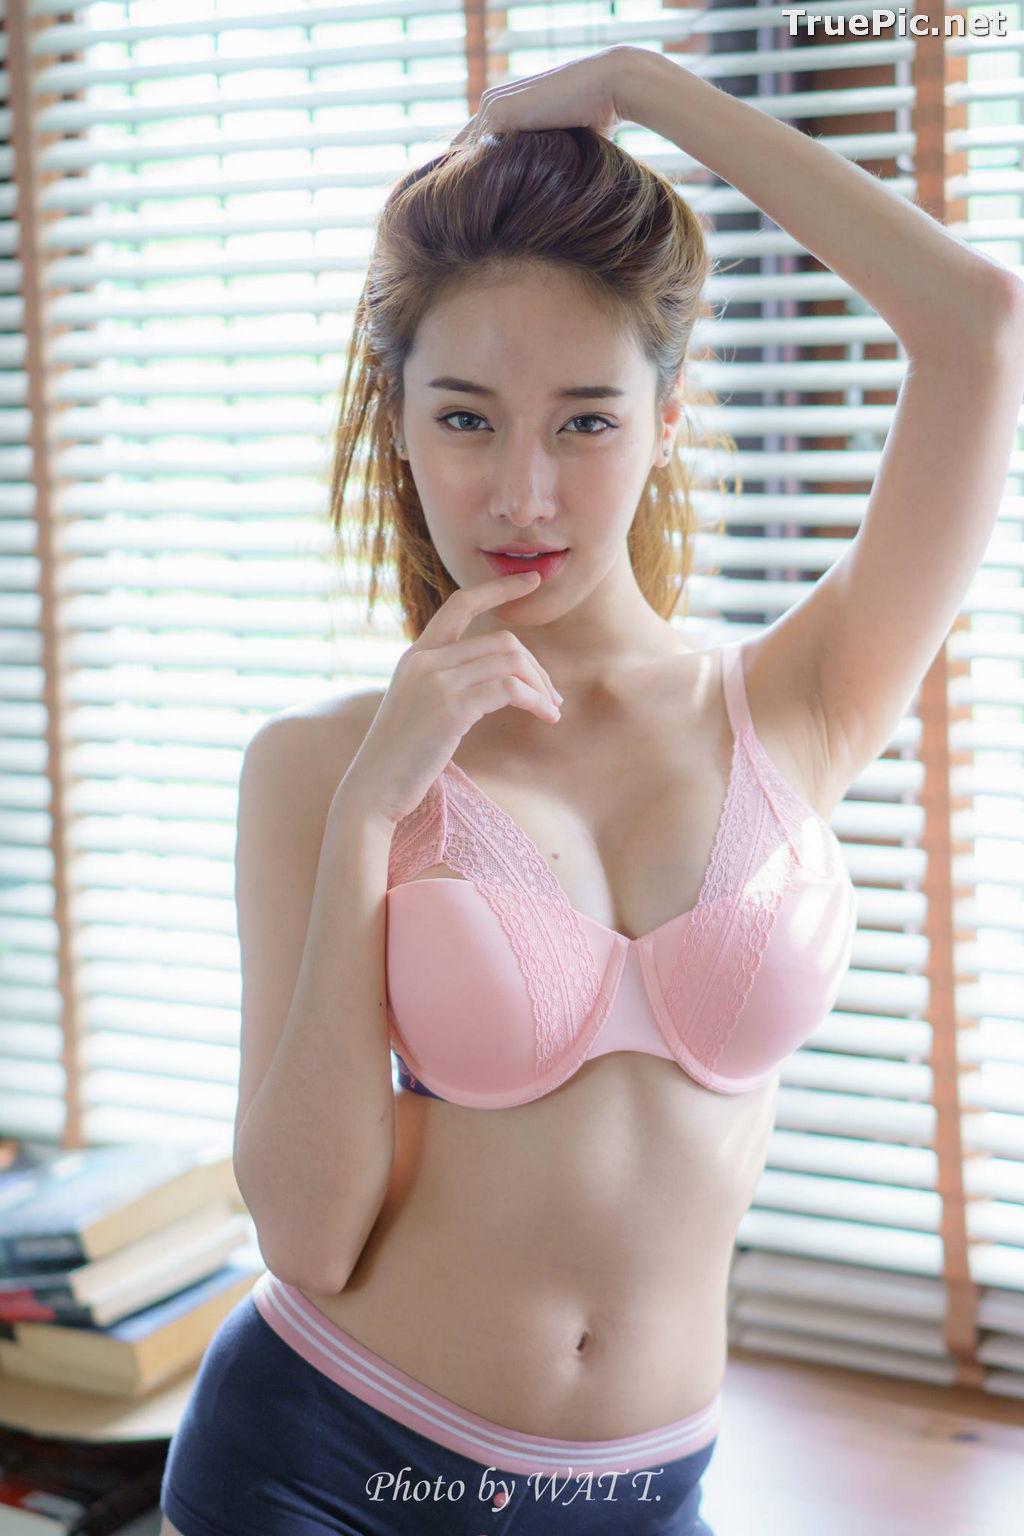 Image Thailand Model - Pichana Yoosuk - Charming Mook - TruePic.net - Picture-6